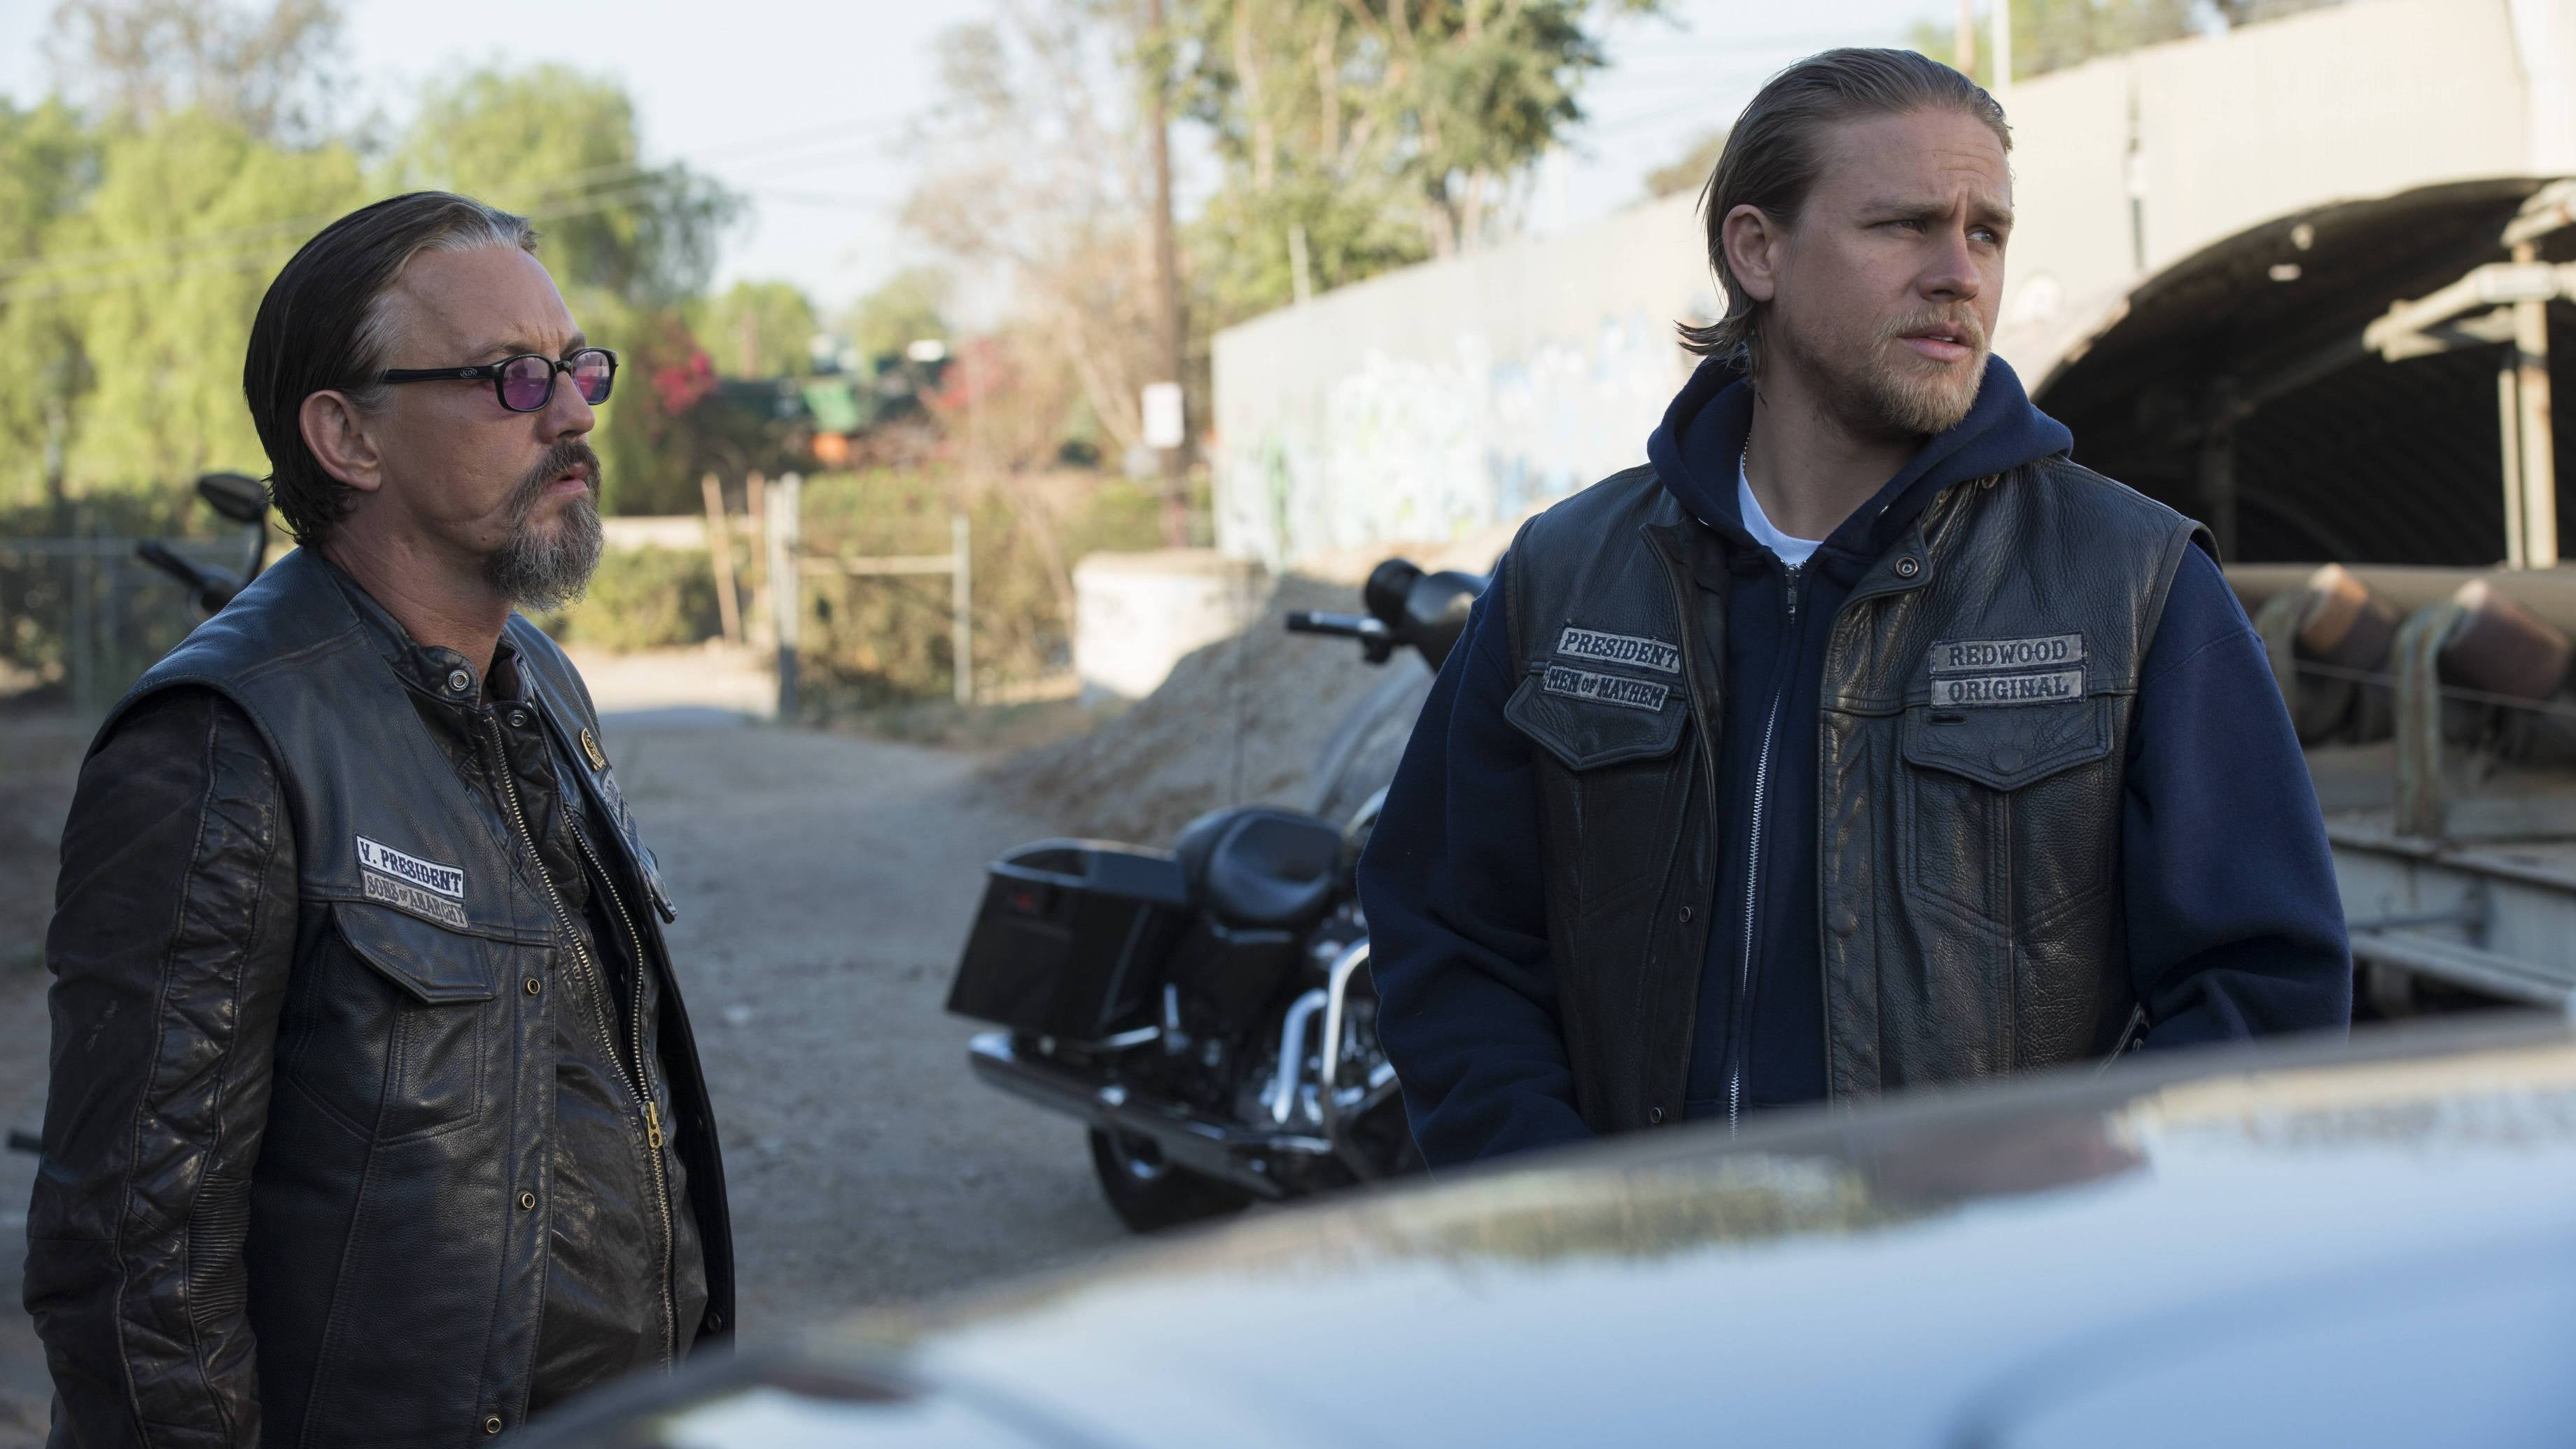 Sons of Anarchy Saison 3 Episode 8 streaming vf Sons of